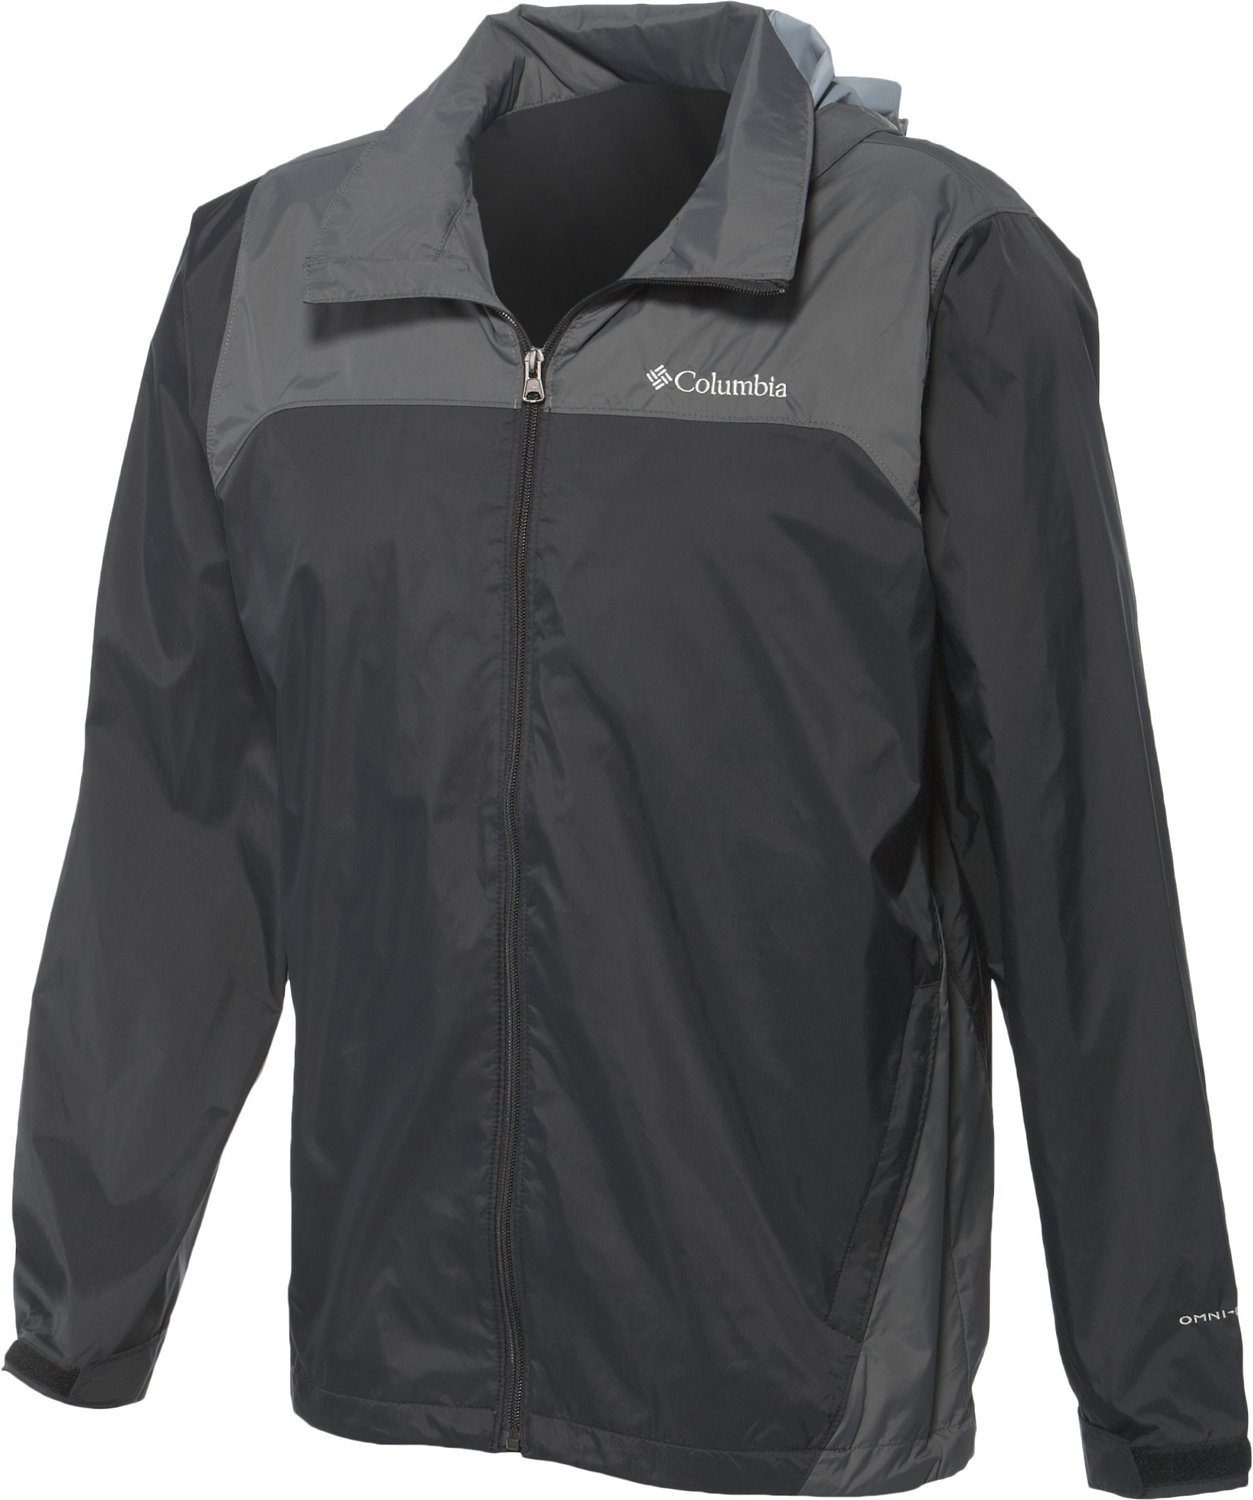 a2da821d0 Columbia Sportswear Men's Glennaker Lake Rain Jacket